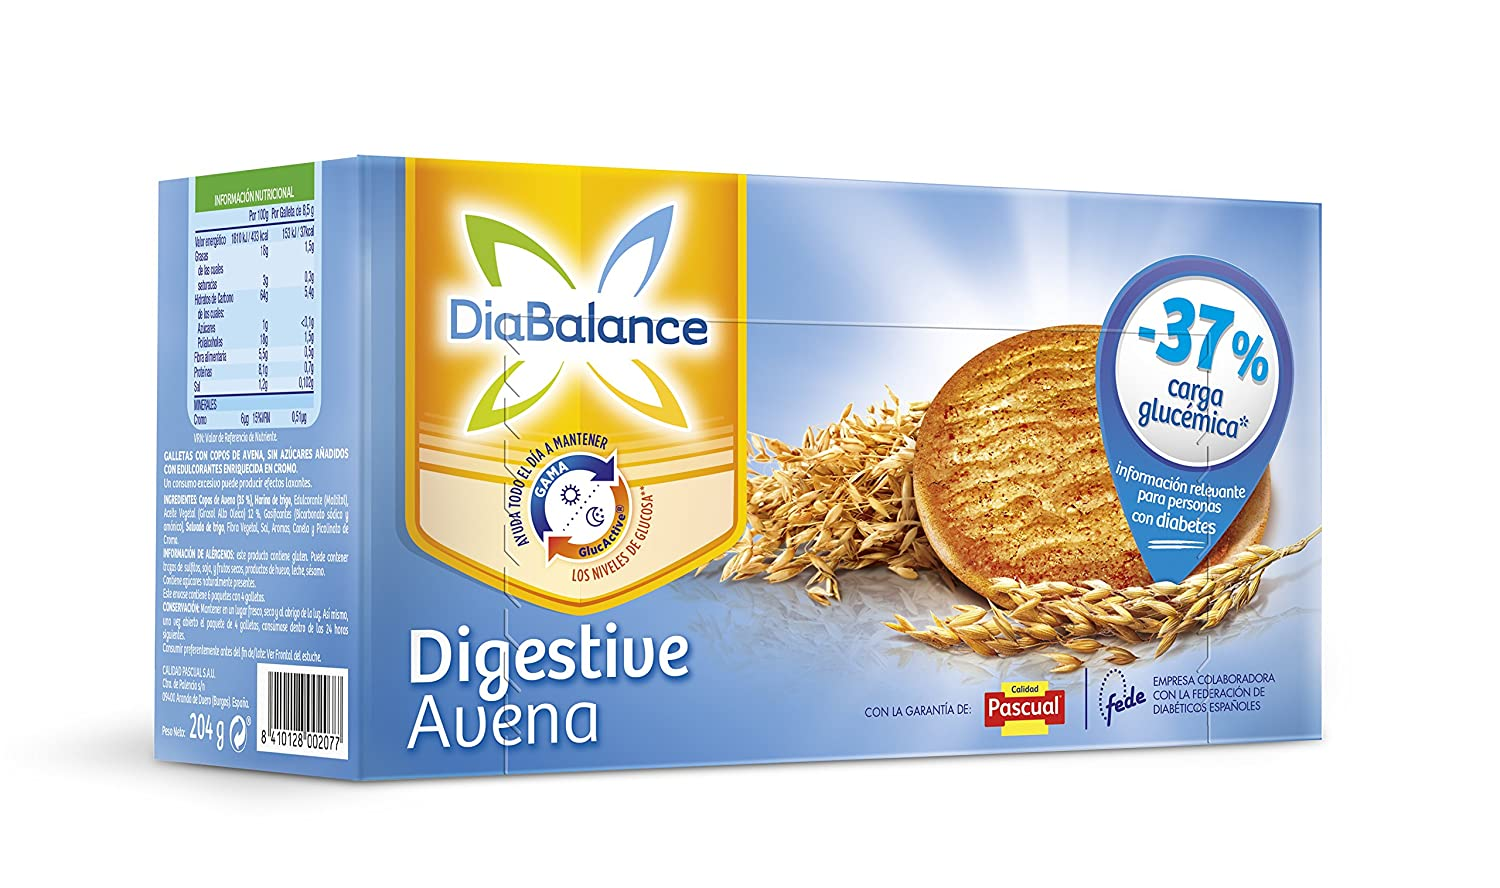 DiaBalance Galleta Digestive - Caja de 6 paquetes con 4 galletas - Total 204 gr: Amazon.es: Amazon Pantry